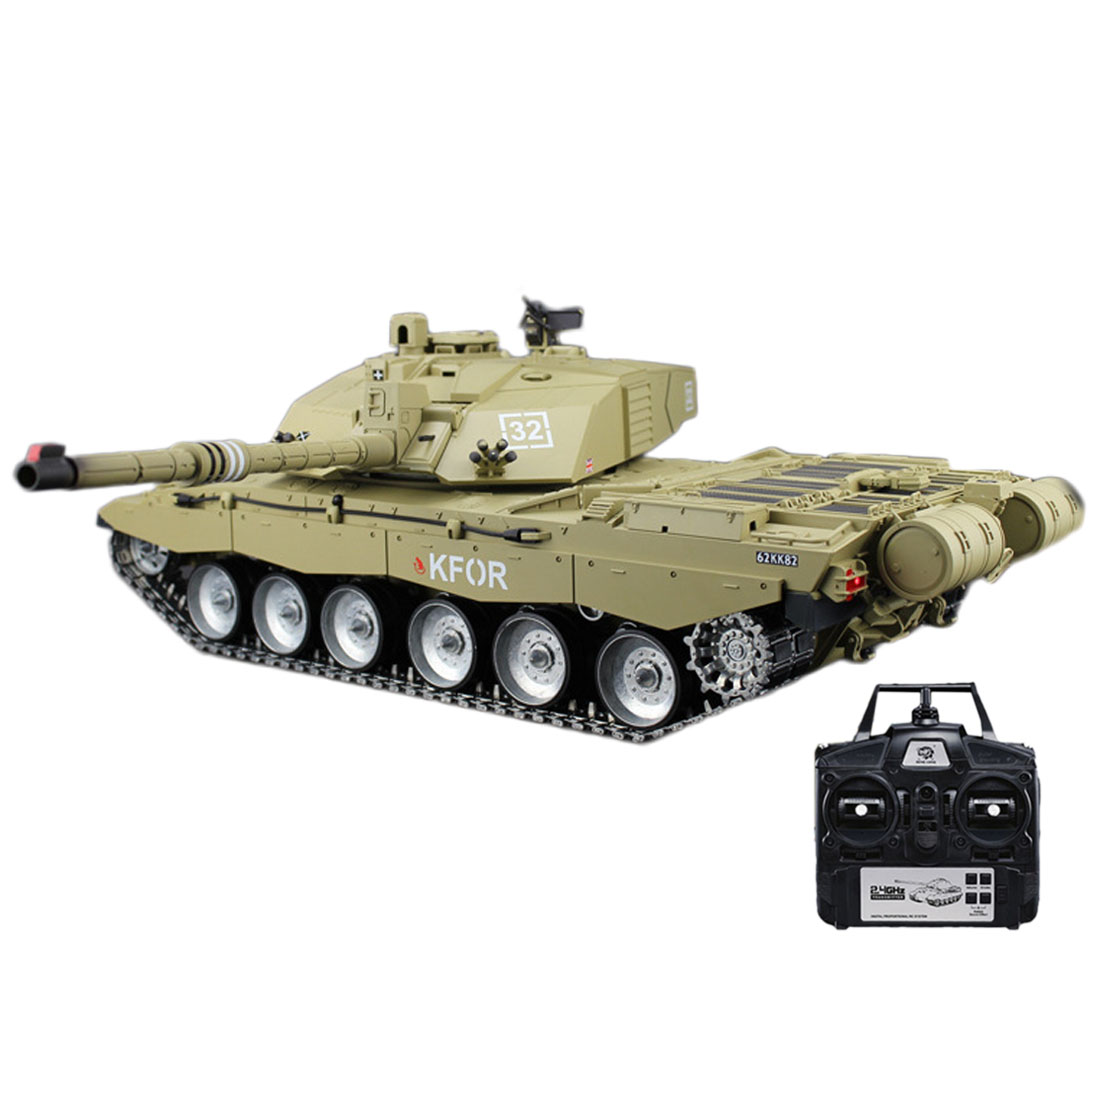 New 1:16 Main Battle Tank 2.4G Remote Control Model Military Tank With Sound Smoke Shooting Effect Metal Ultimate Edition image